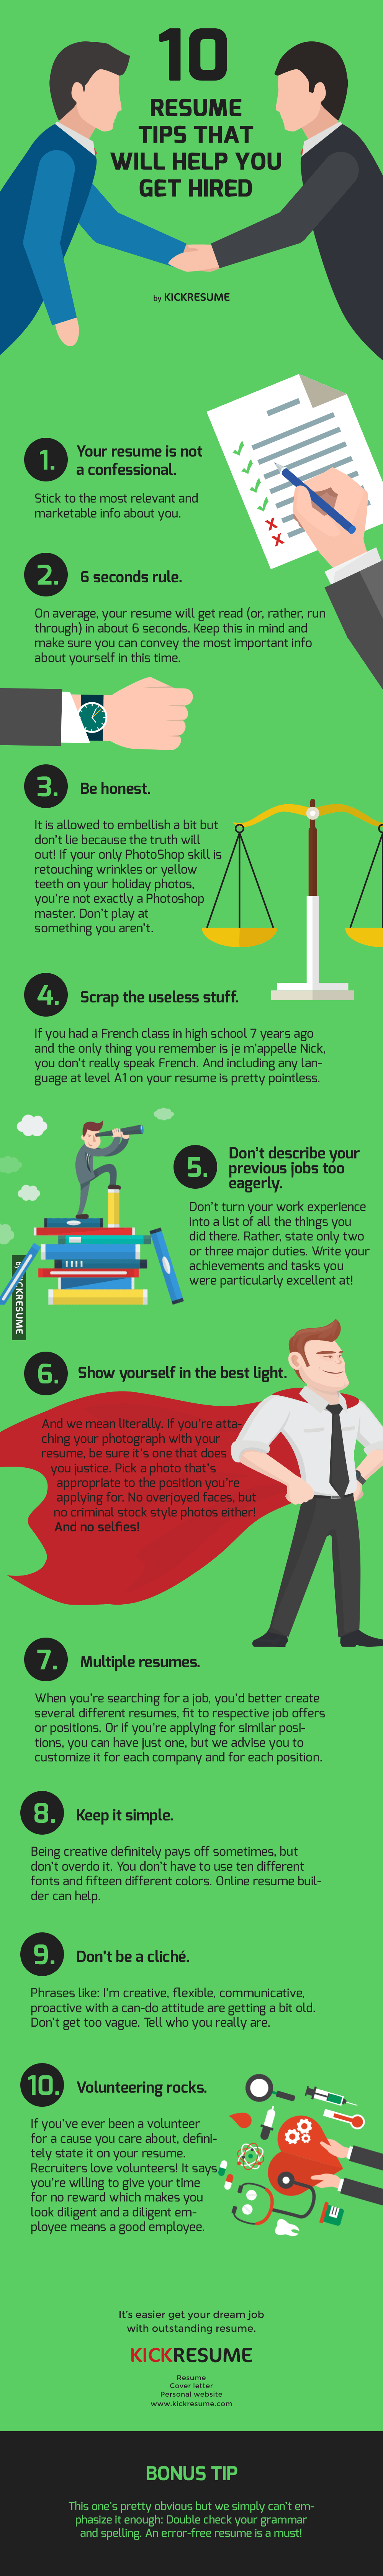 Top 10 Resume Tips That Will Get You Hired In 2017 Infographic